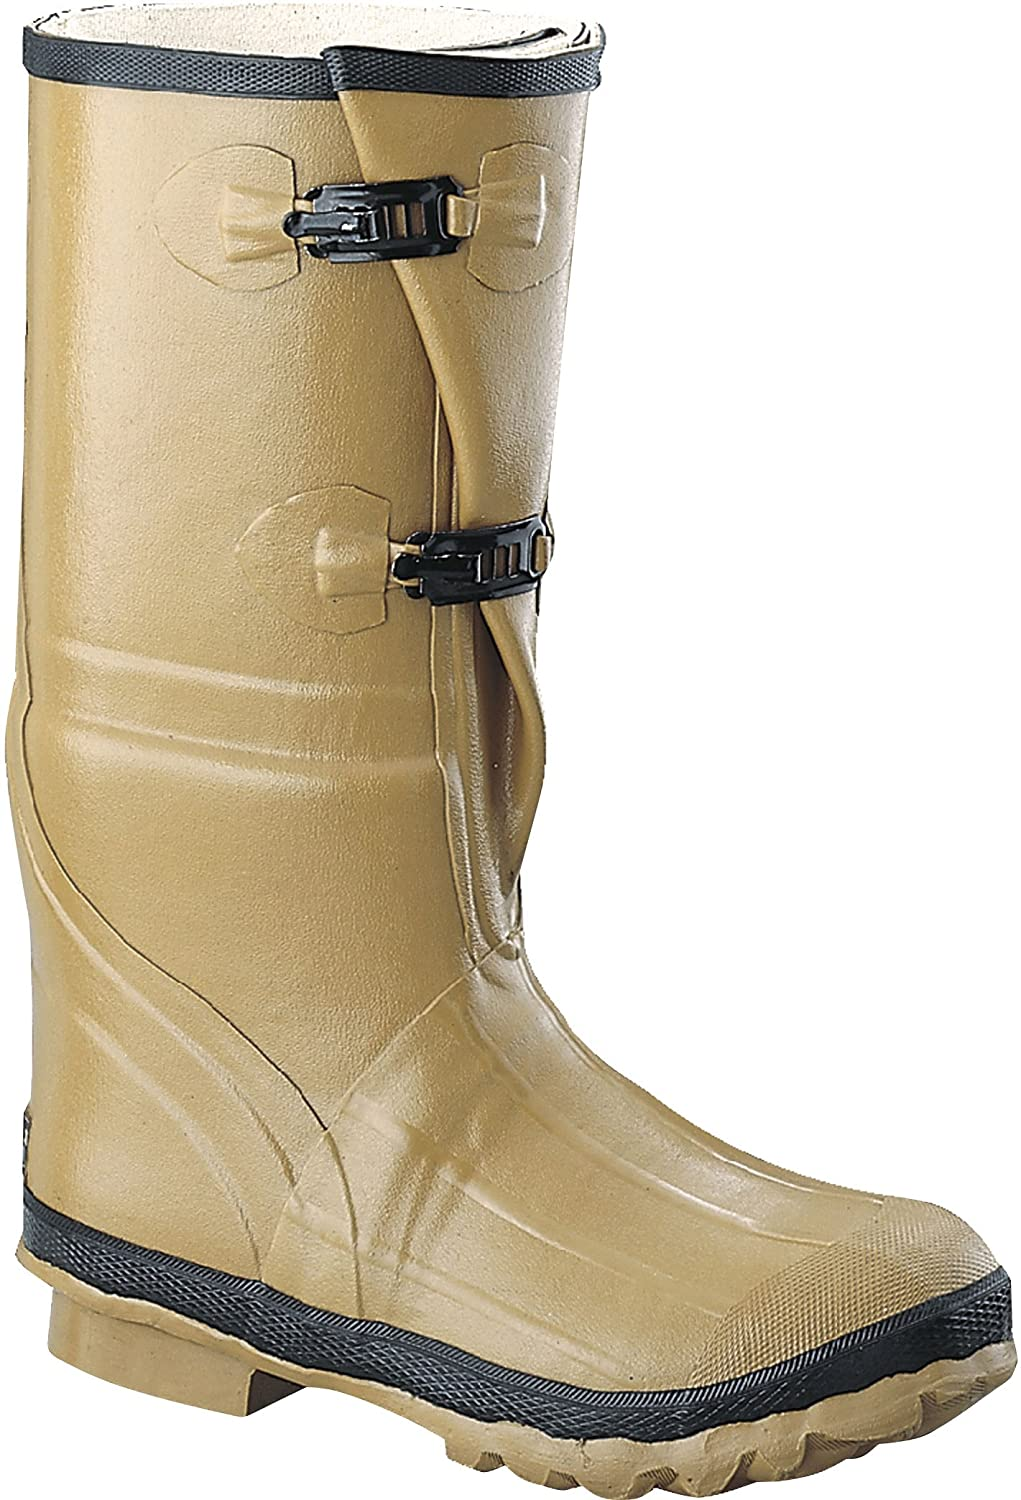 Ranger 16 Heavy Duty Men's Rubber Insulated Work Boots, Marsh Brown (78590) Sperian Protection Group 78590-TNM-090